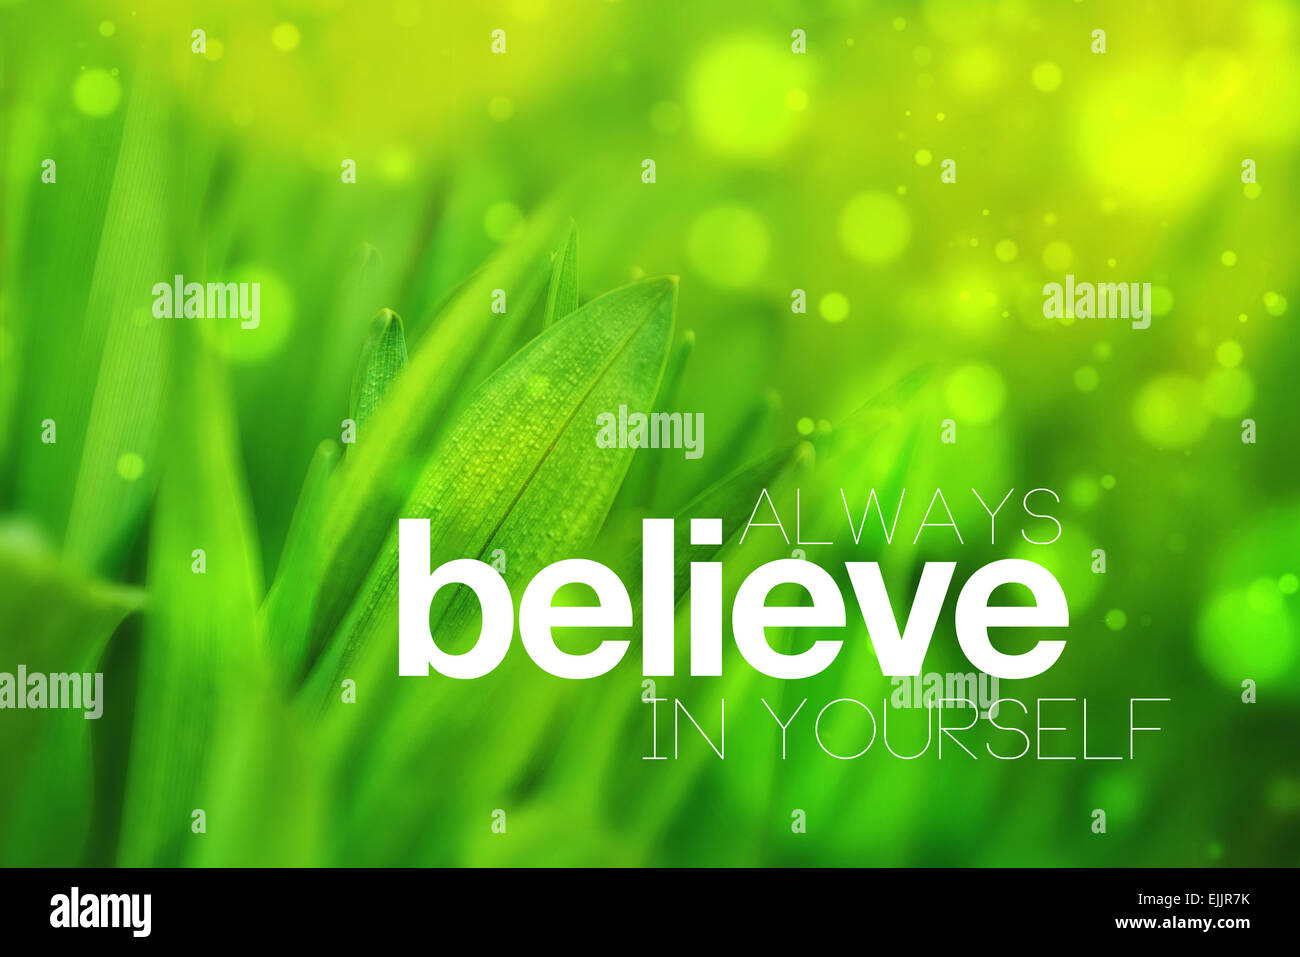 Always Believe in Yourself Motivational Conceptual Image, Quotation on Blurred Spring Green background, Vintage - Stock Image